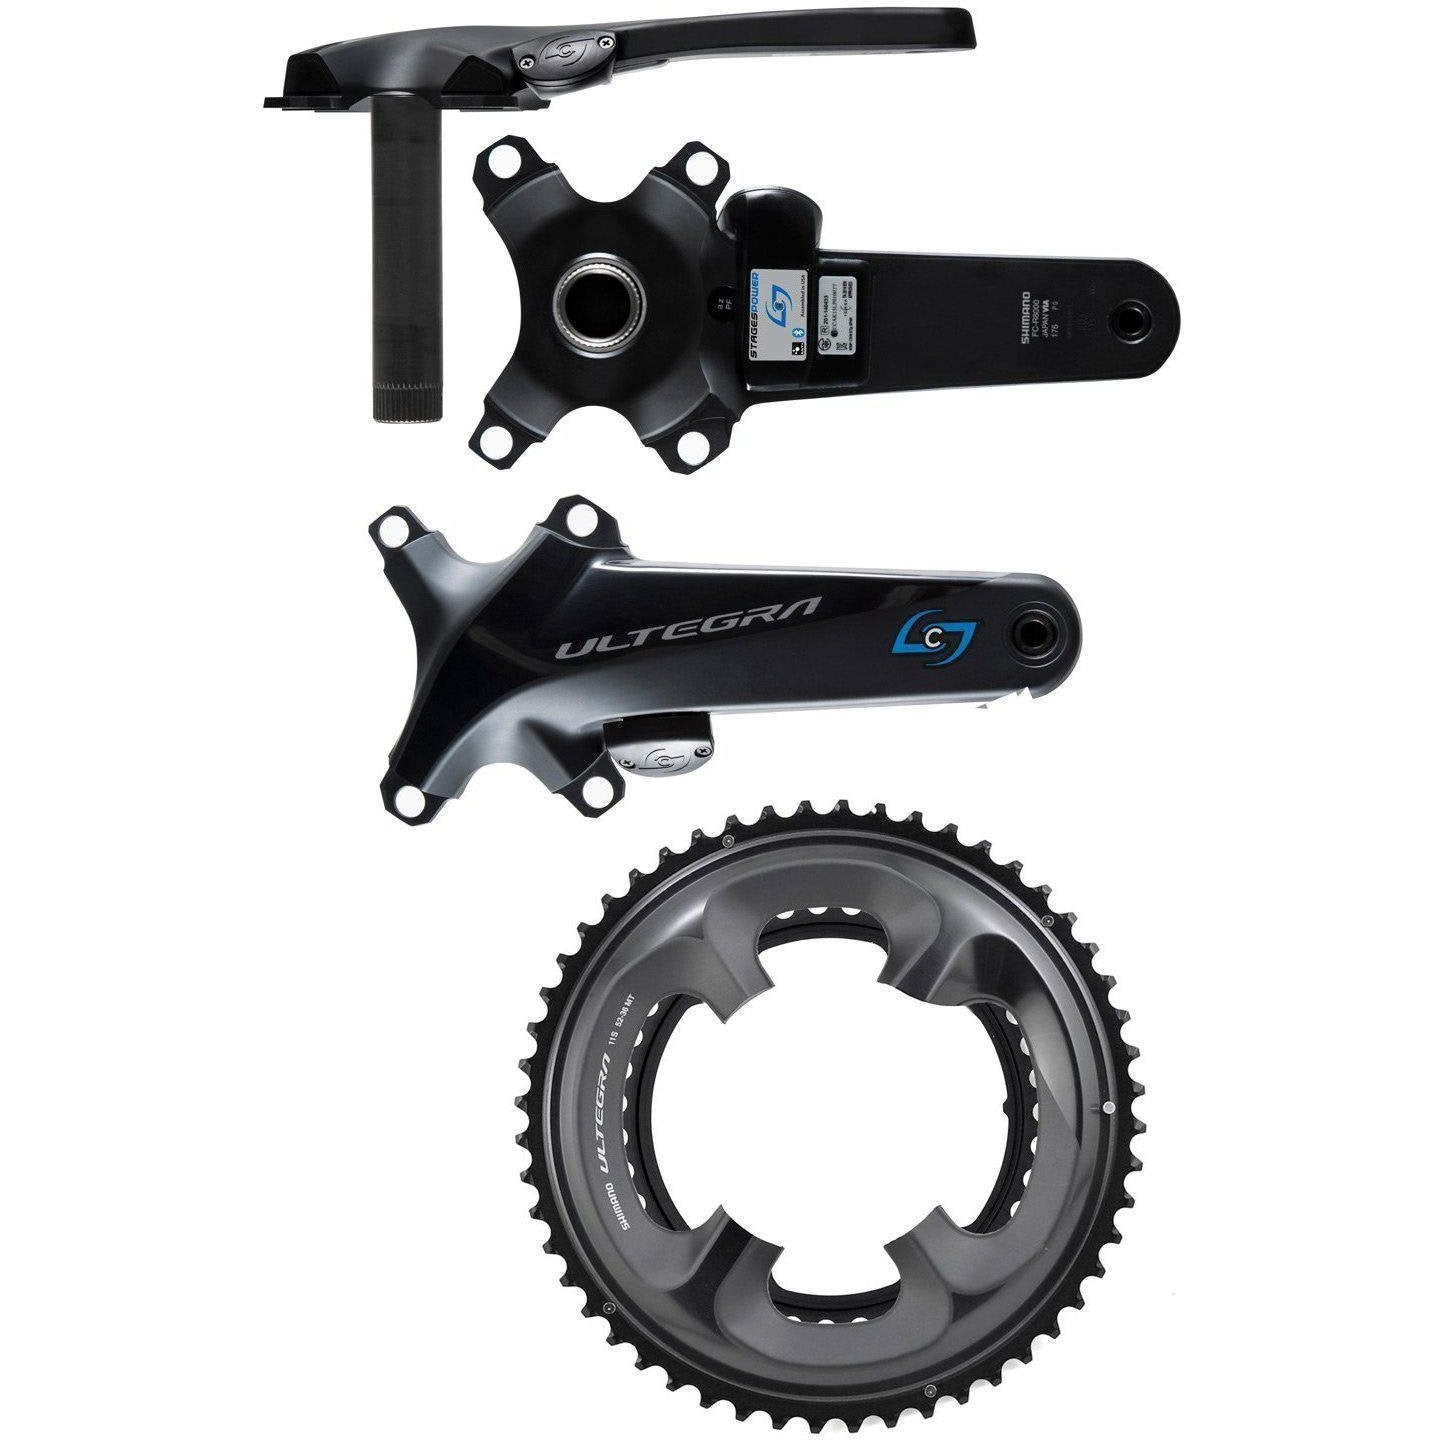 Stages-Stages Power R - Shimano Ultegra R8000-Grey-165mm-50/34-STAUR8RA4-saddleback-elite-performance-cycling